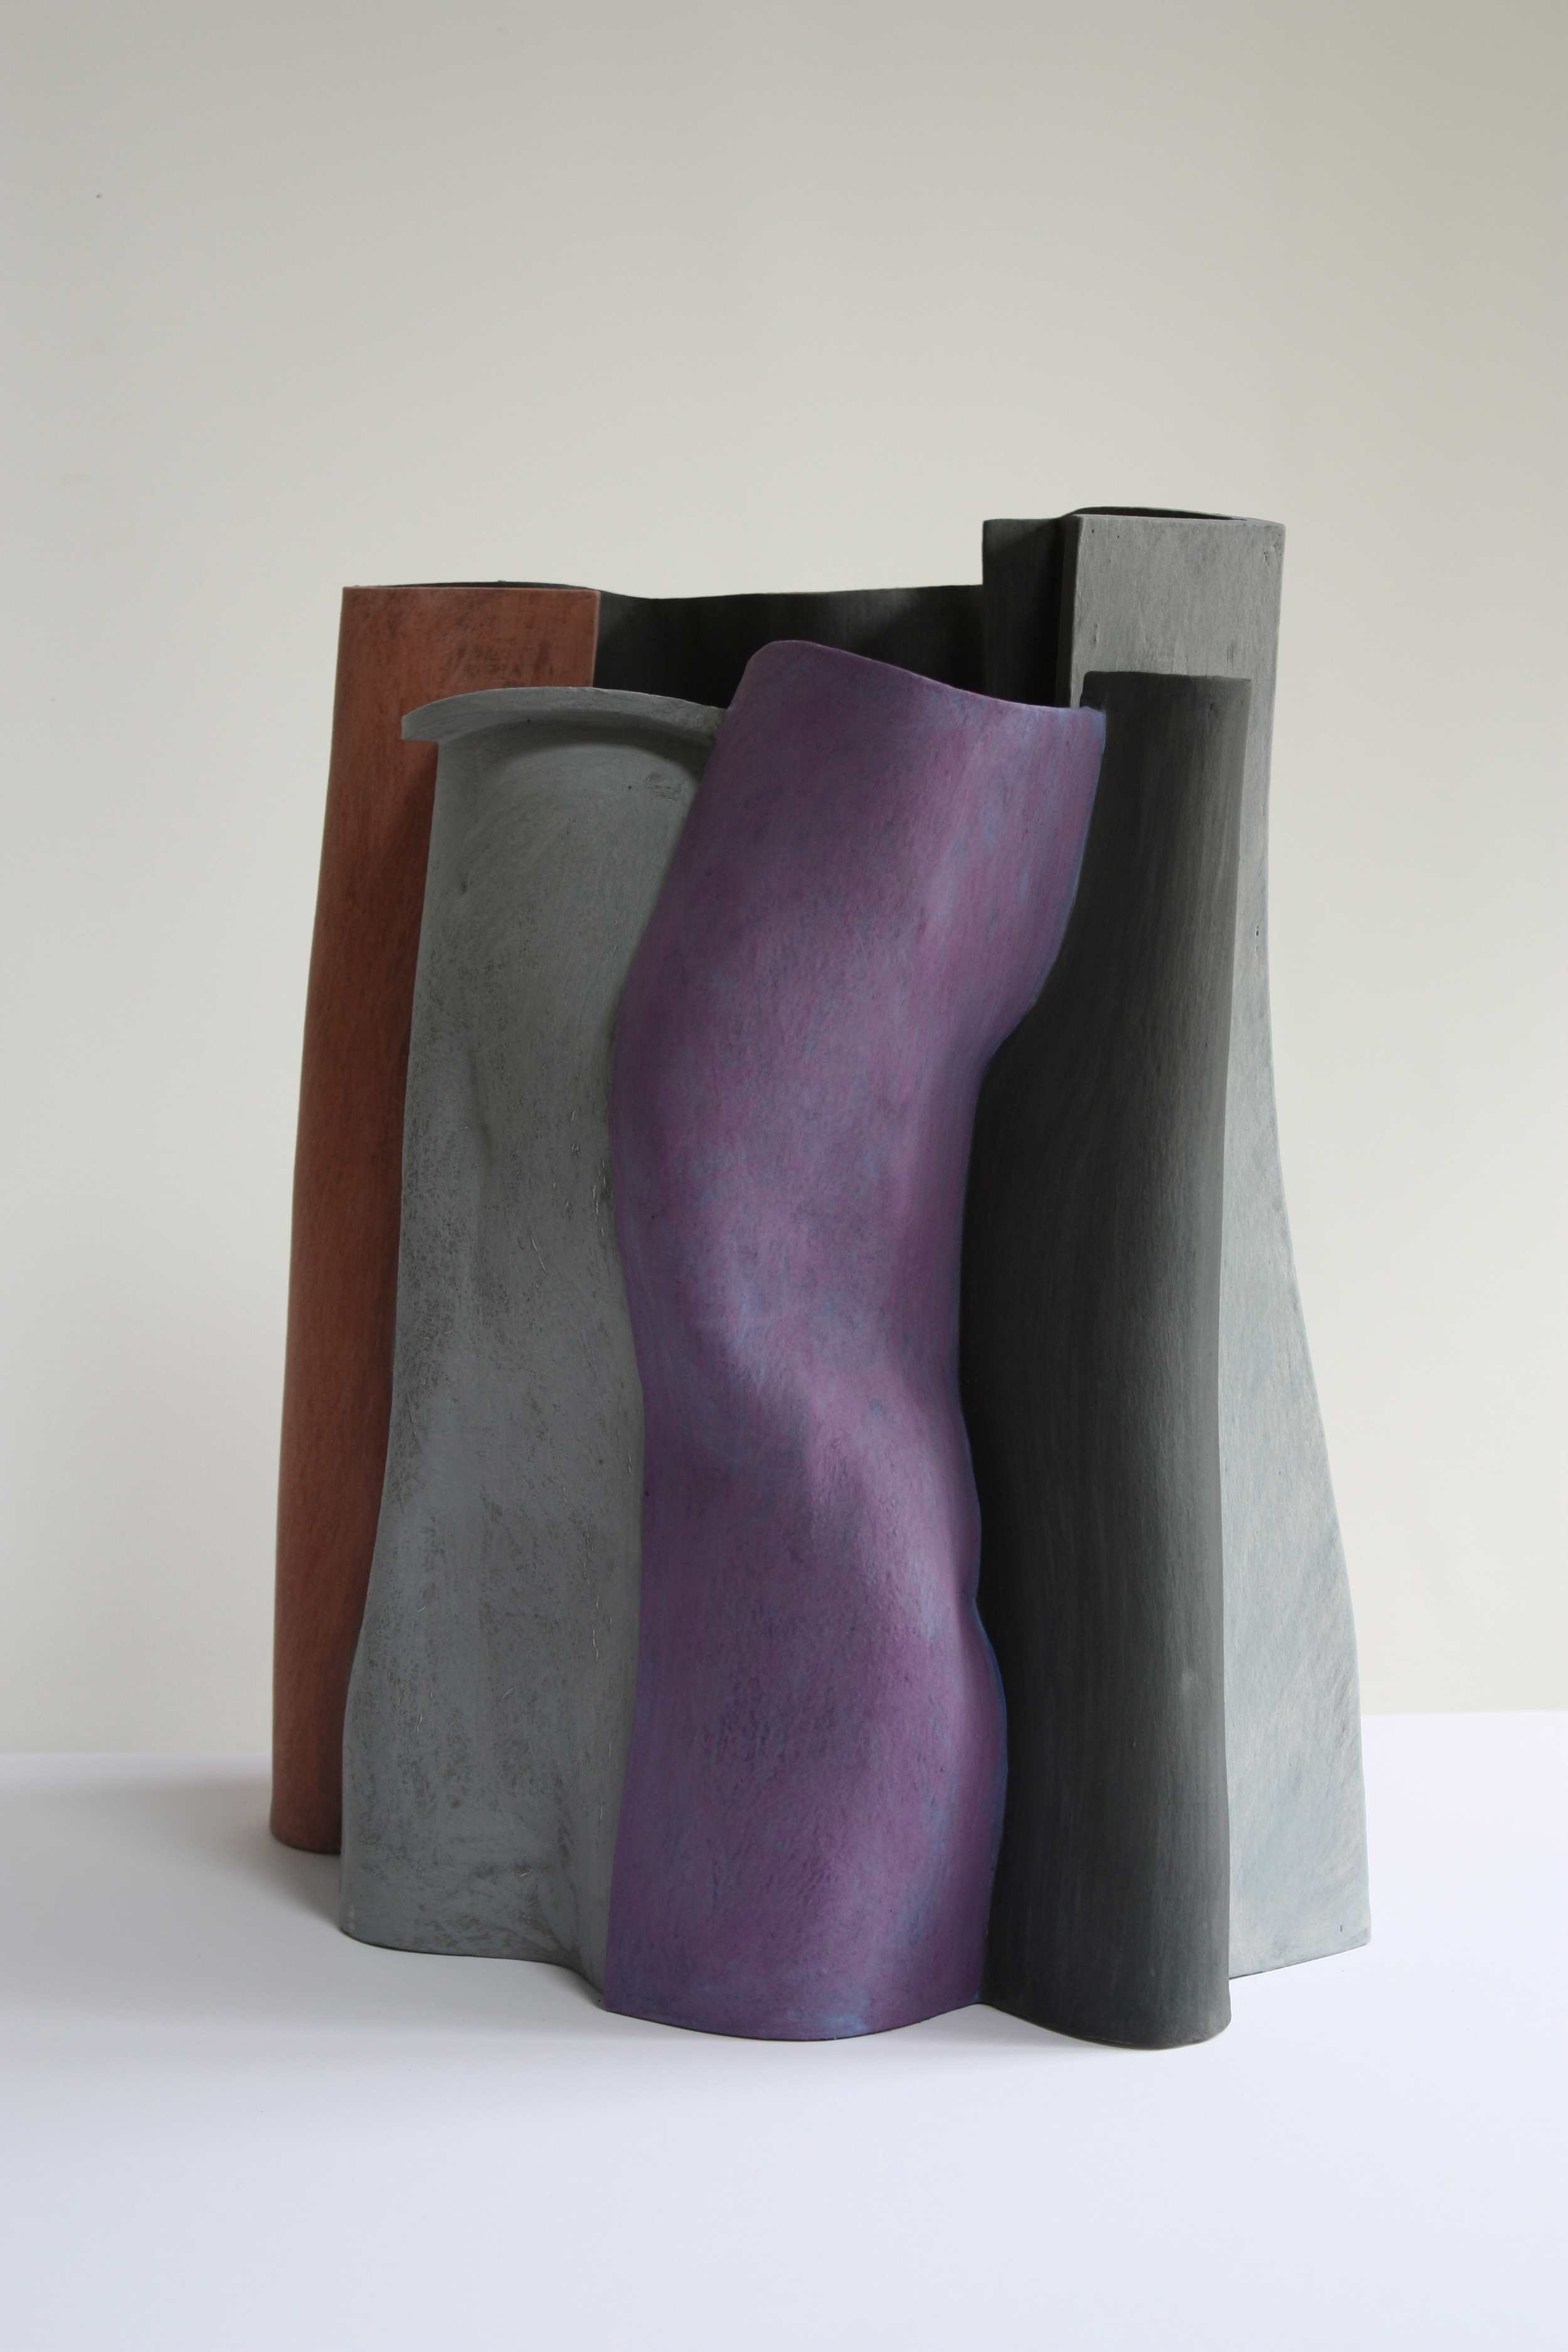 Give it time, 2012, 46cm high